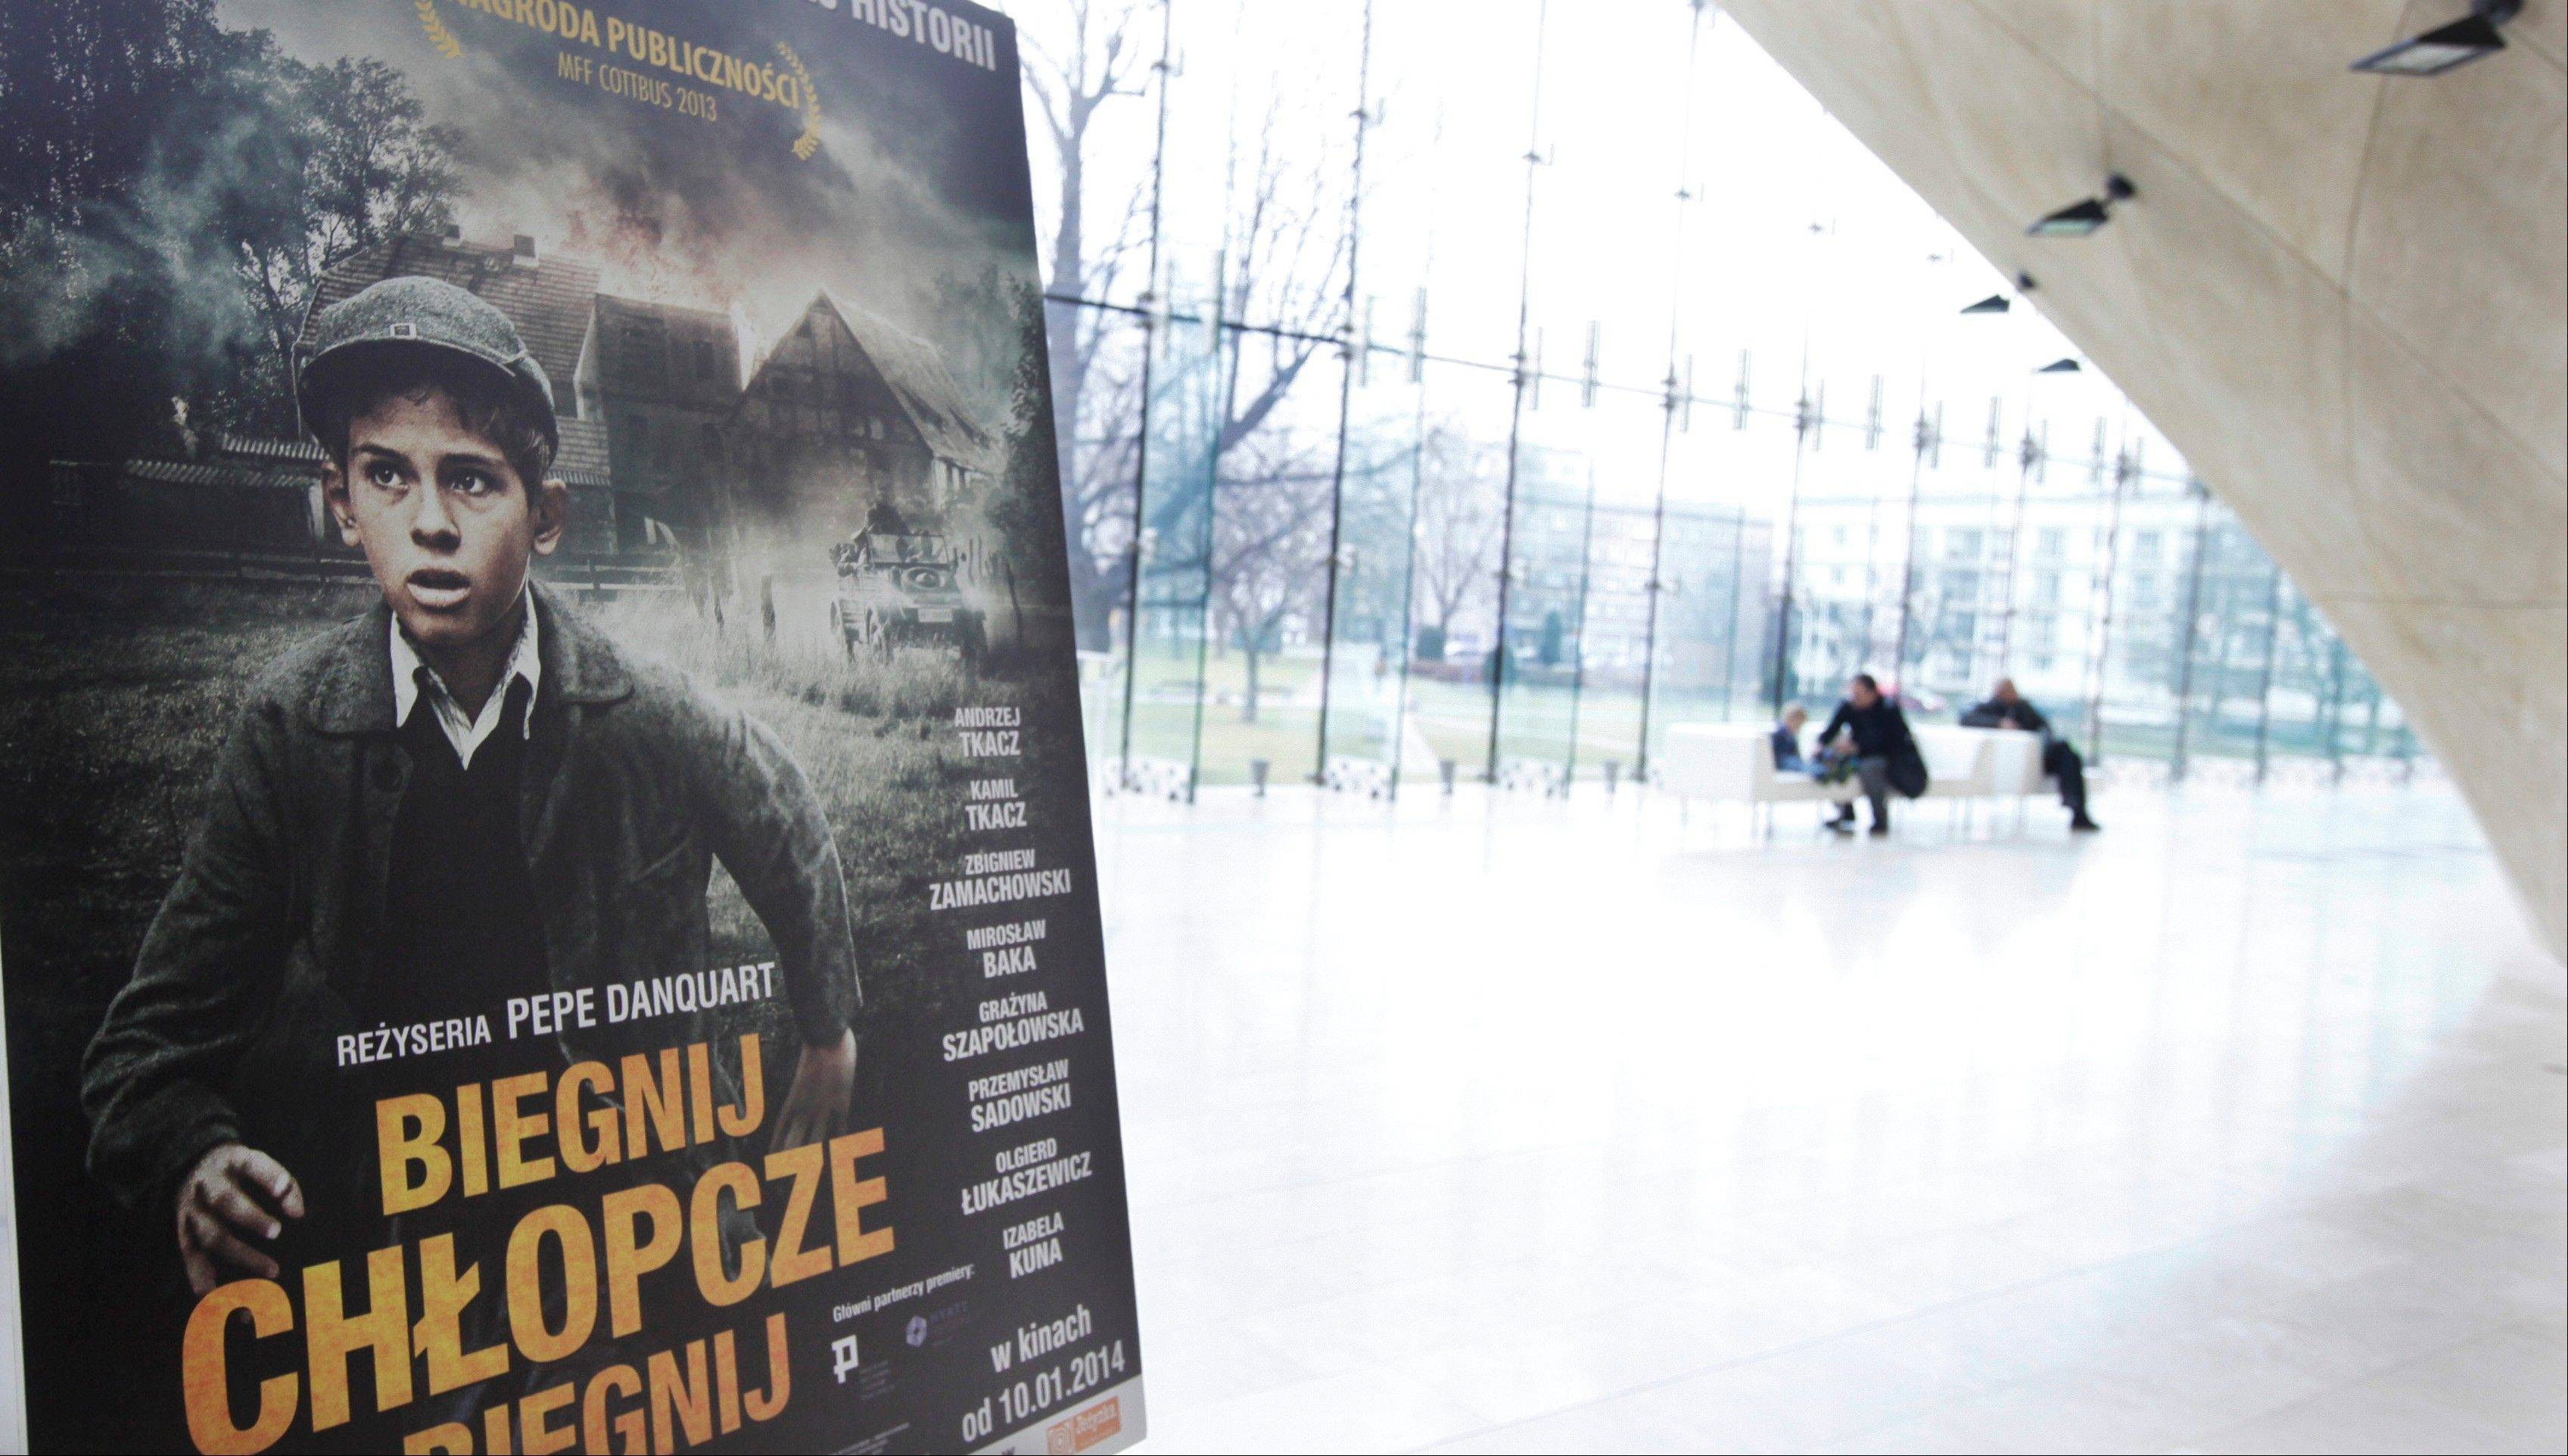 Posters advertising �Run, Boy, Run� are displayed at the Museum of the History of Polish Jews prior to the world premiere of the movie by German Oscar-winning director Pepe Danquart about a Jewish boy struggling to survive the Holocaust, in Warsaw, Poland. The movie is based on a true story of 10-year-old Yoram Friedman who escaped the Warsaw ghetto in 1943 and hid in the woods near the city.